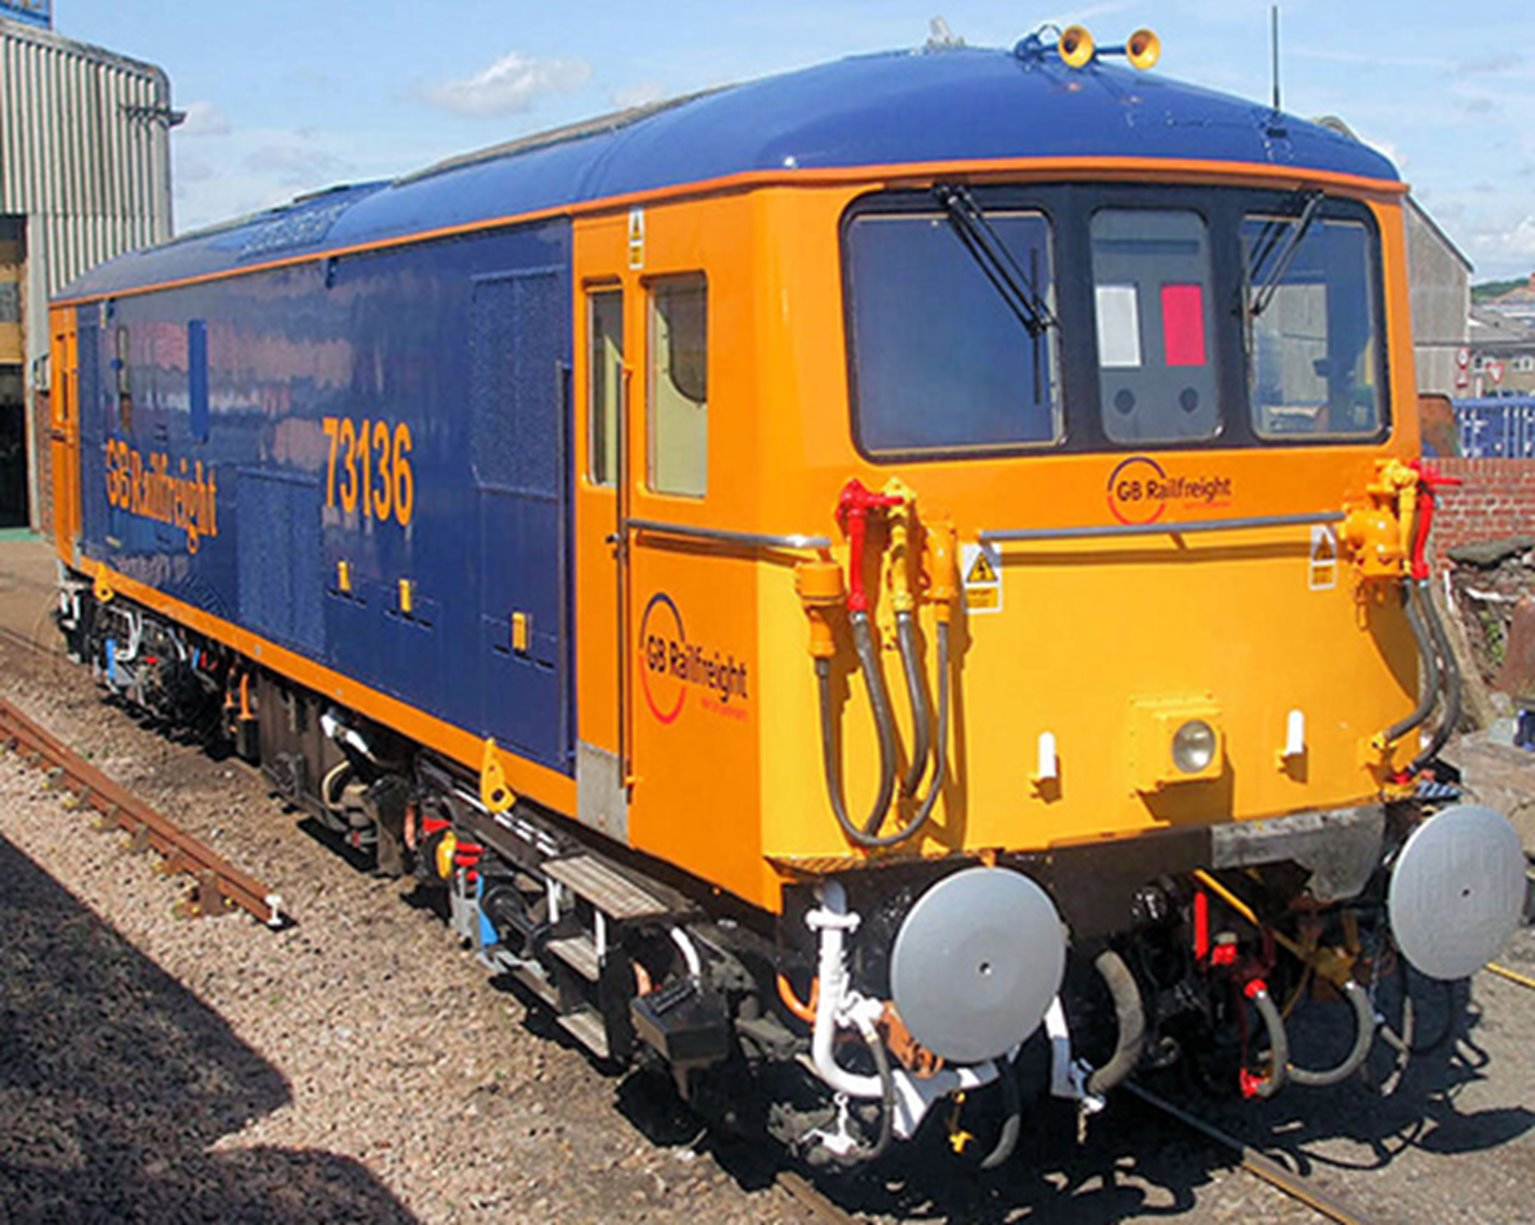 Class 73 136 GB Railfreight Blue/Orange Diesel Locomotive